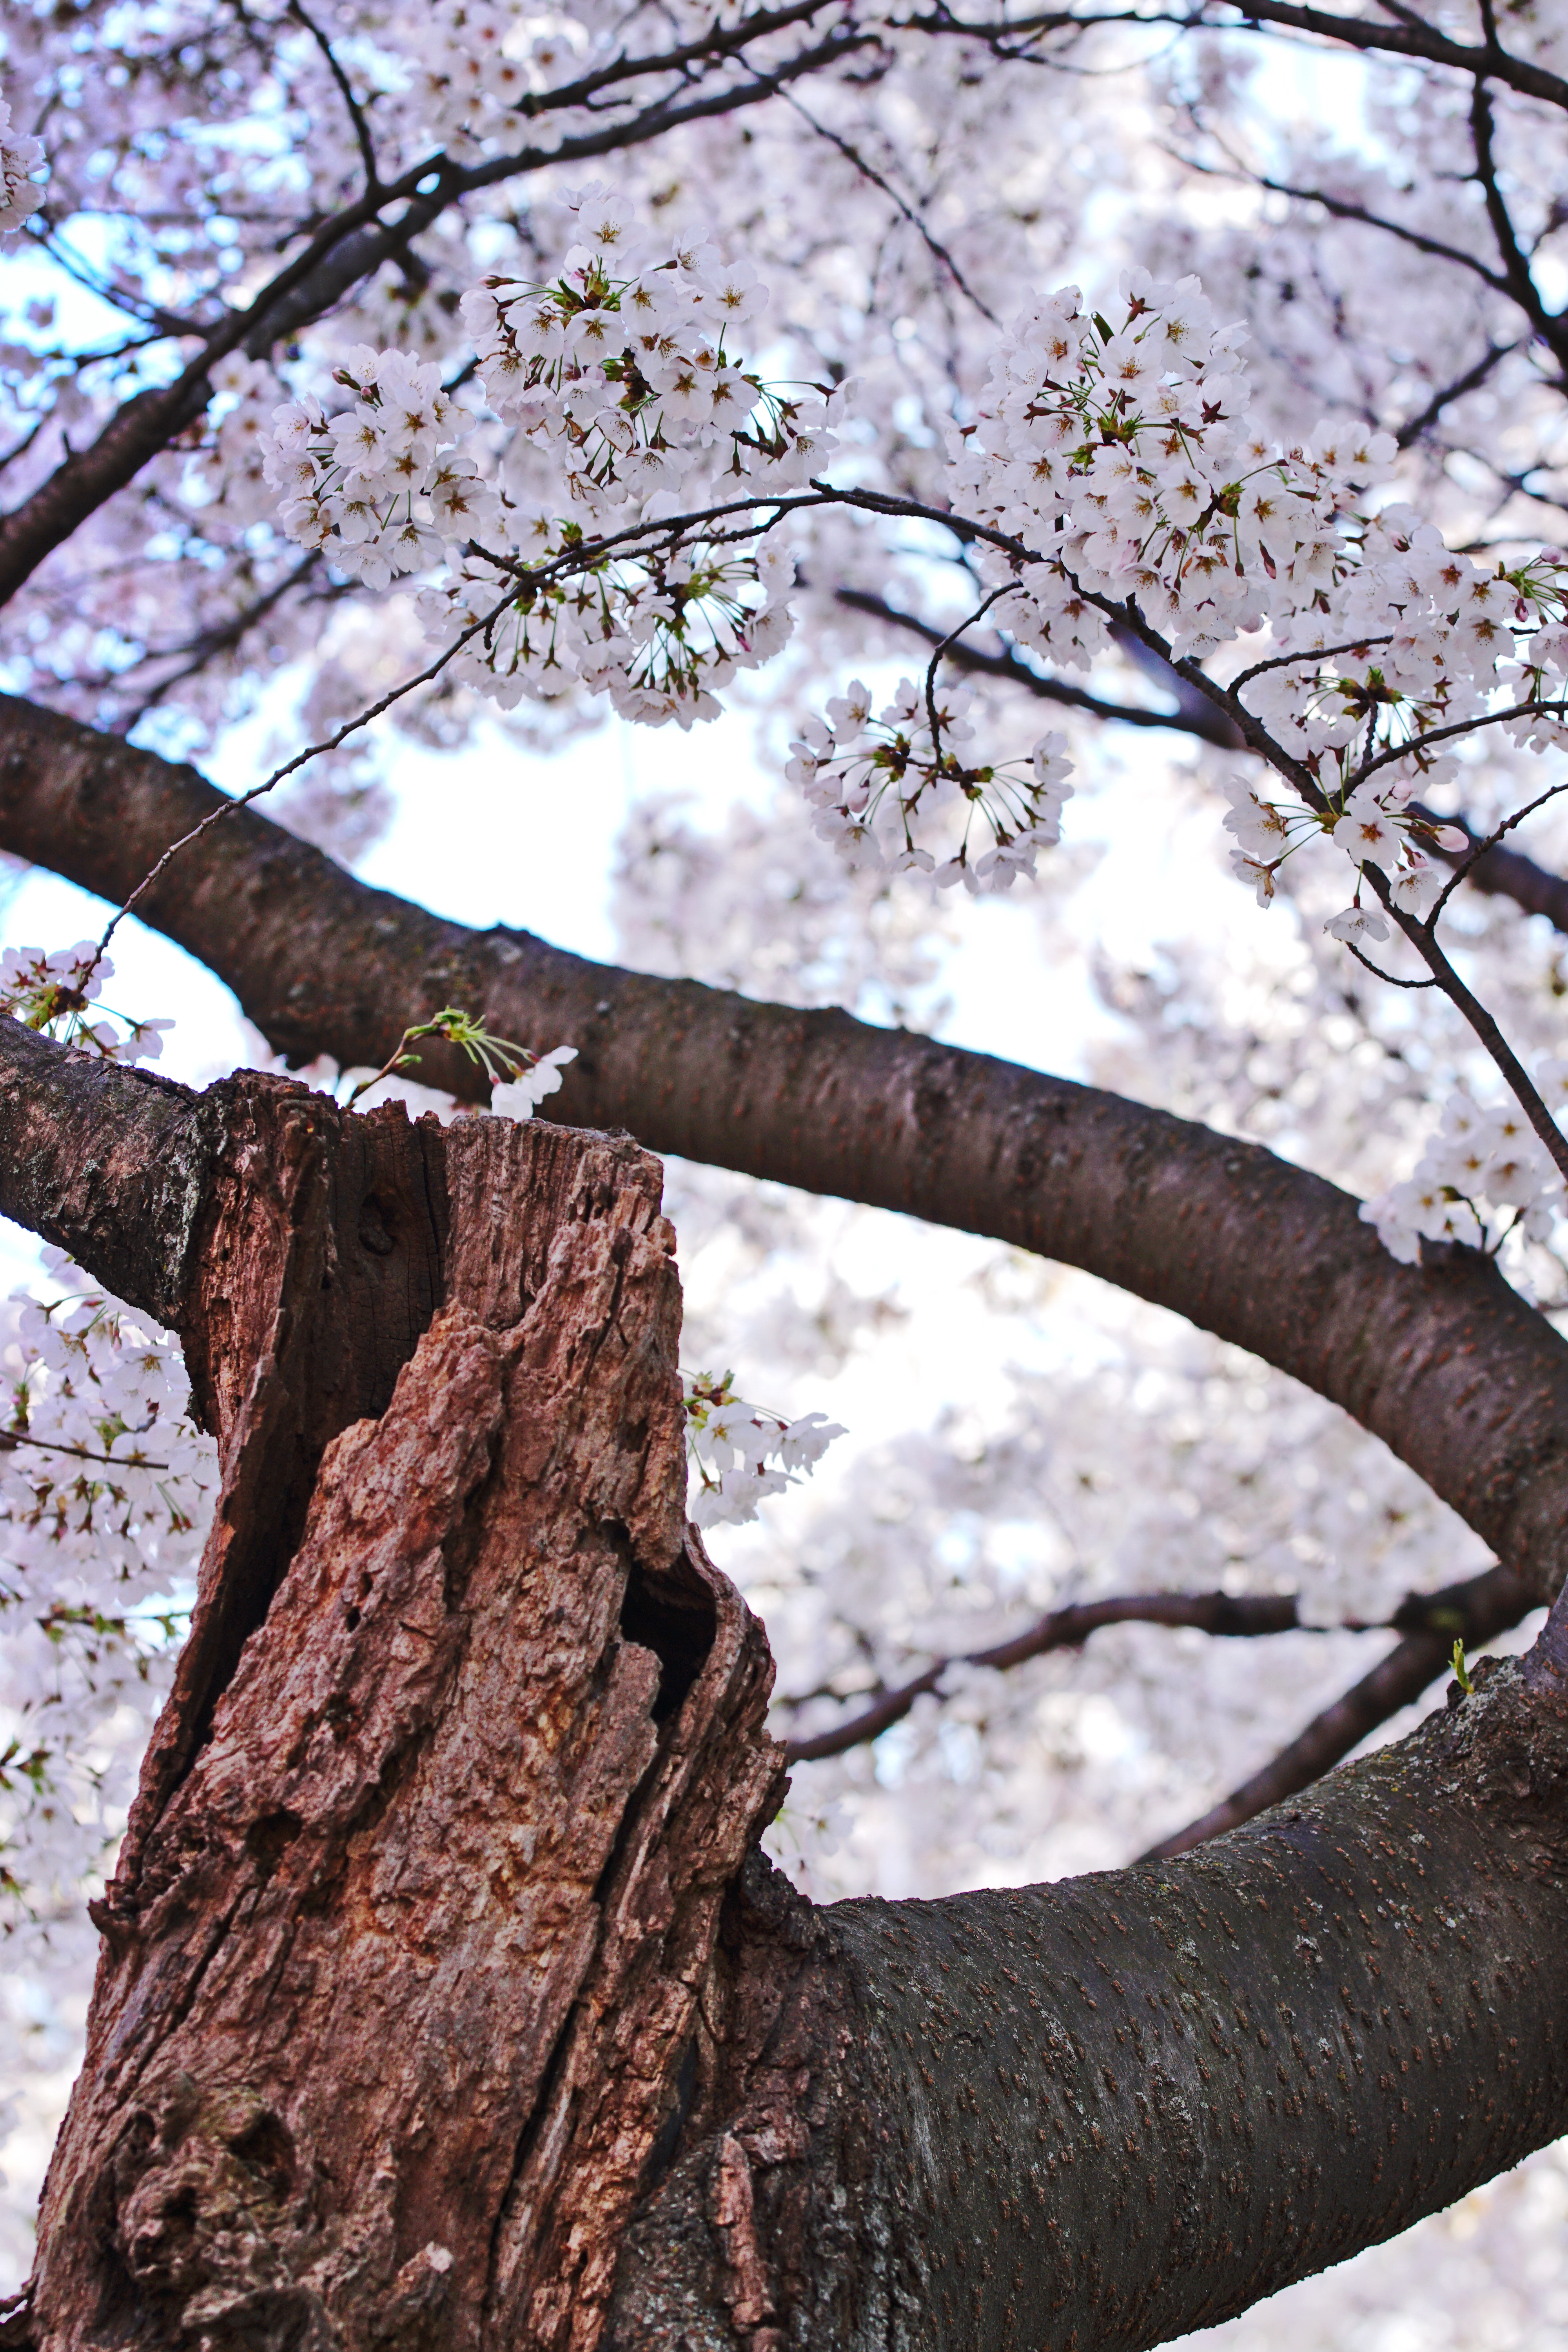 Blossoms and mangled trunk